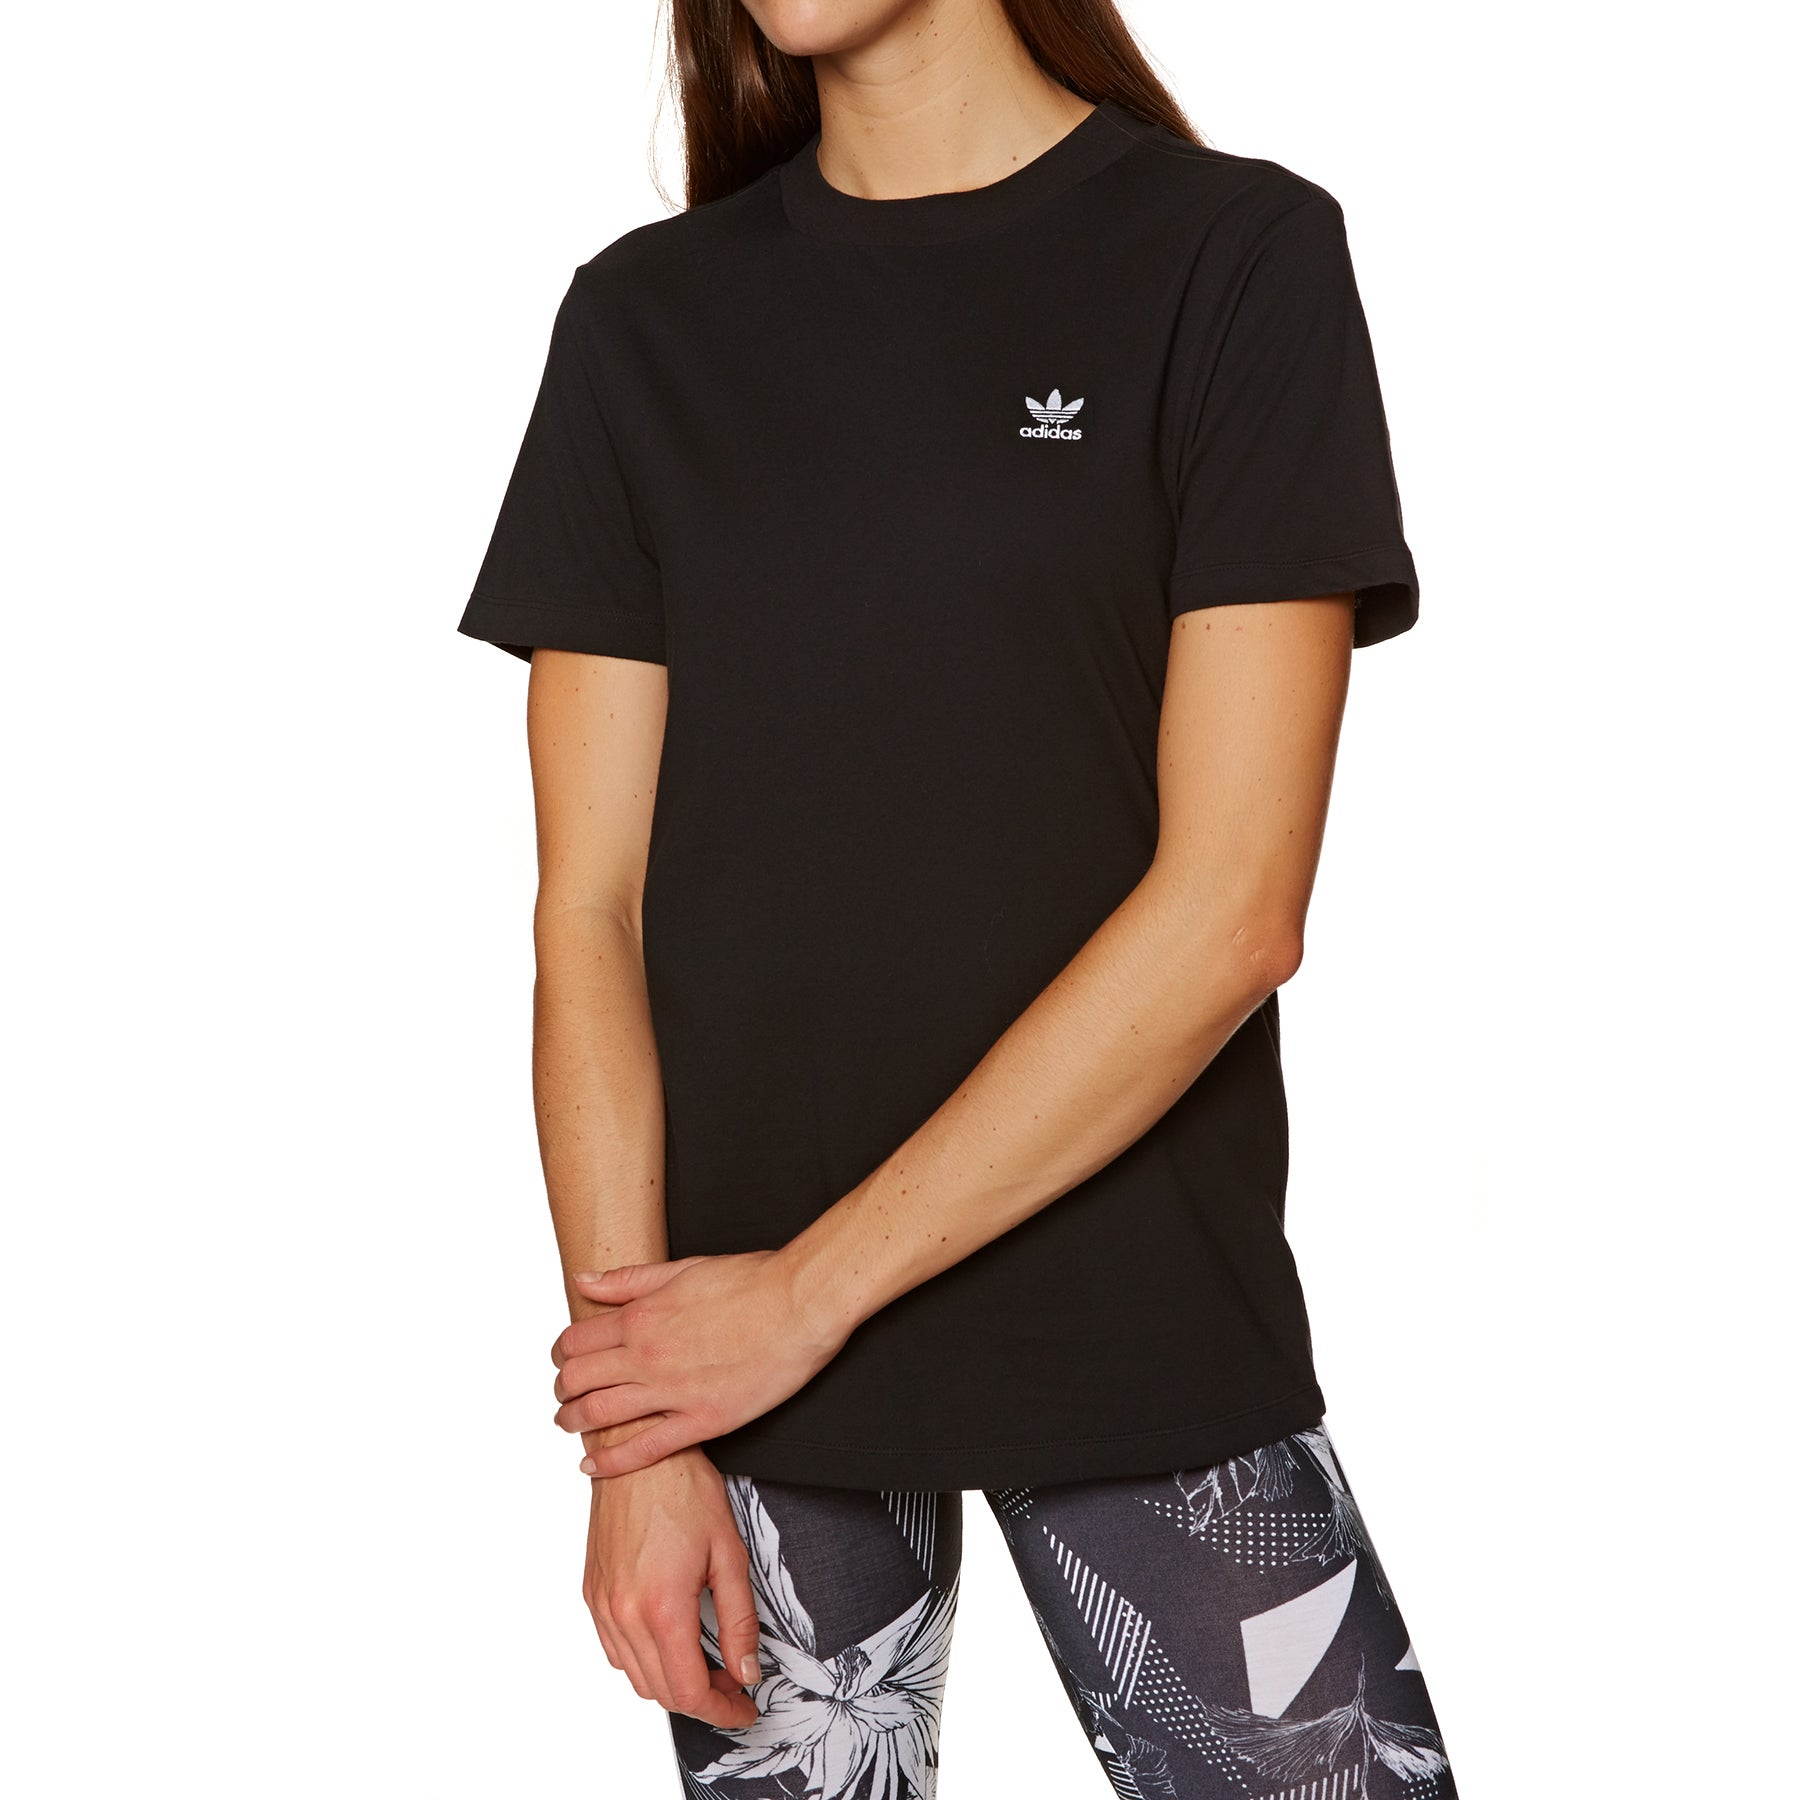 Adidas Originals Complements Womens Short Sleeve T-Shirt - Black